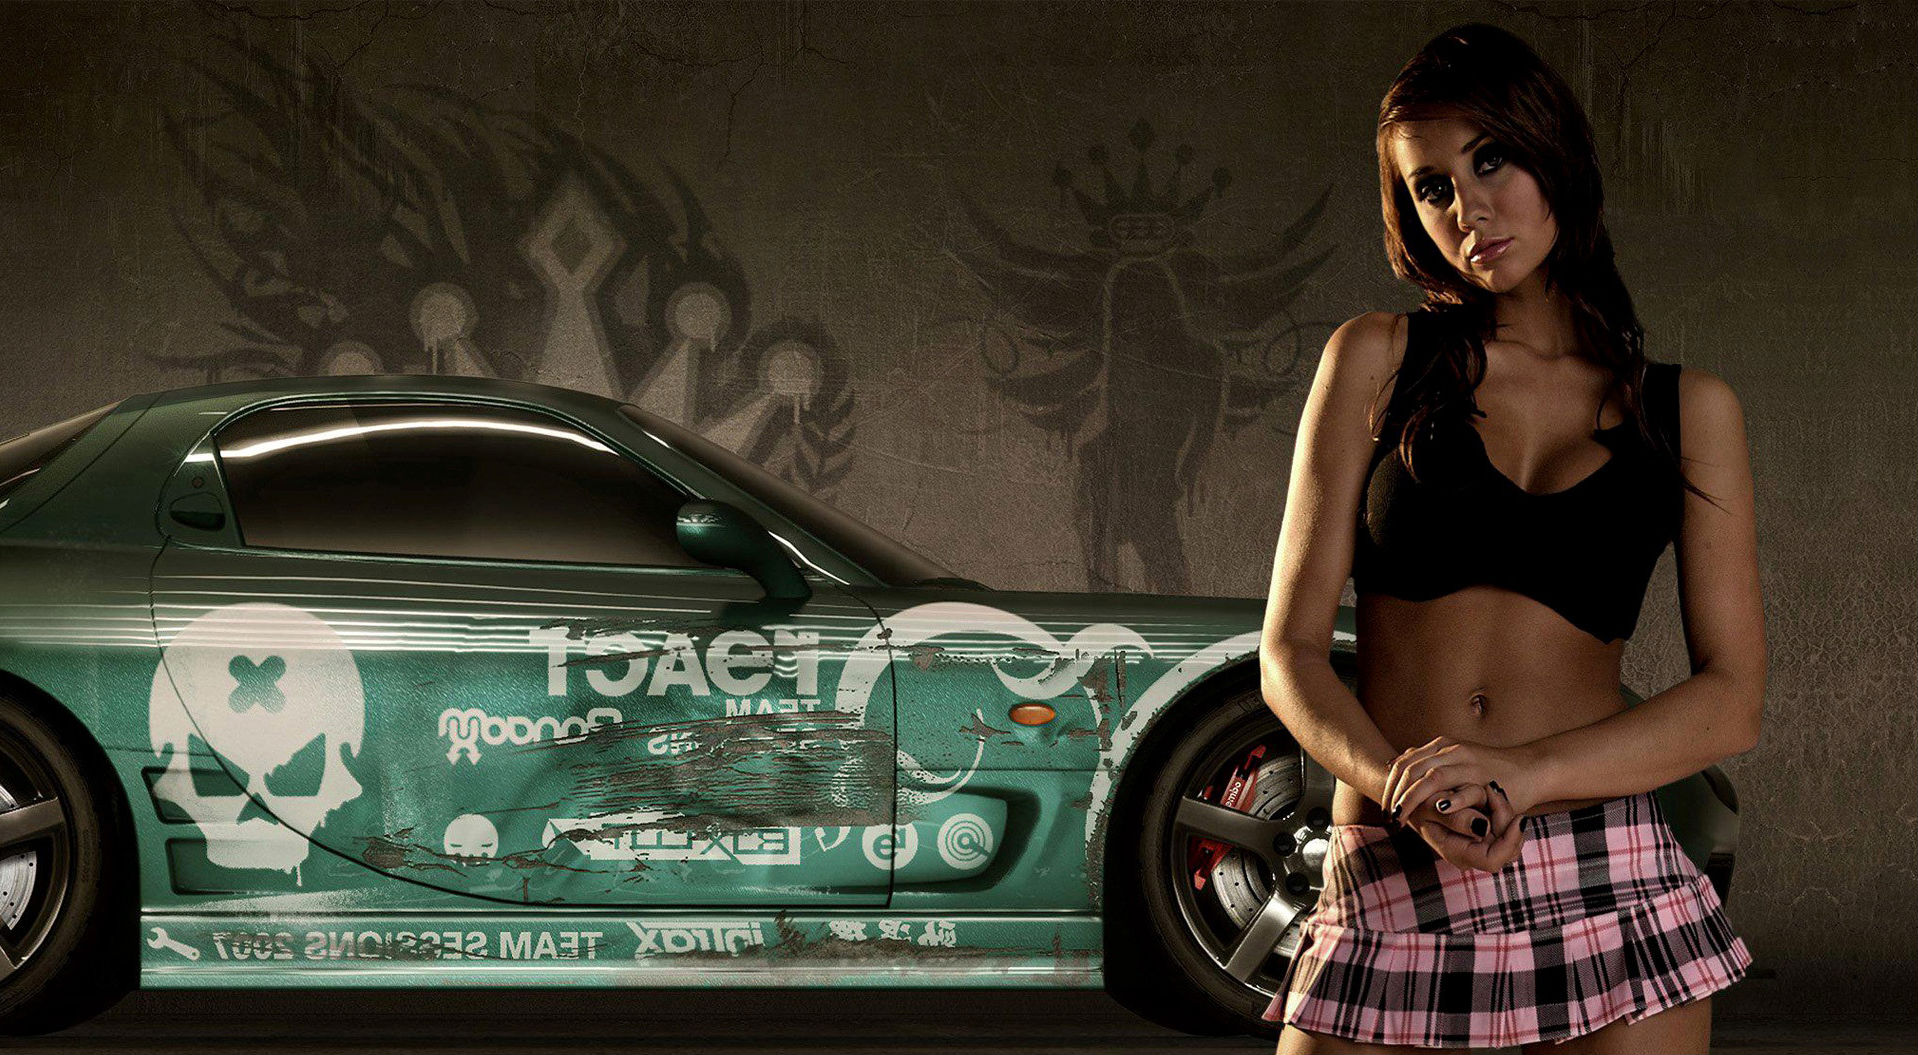 need for speed: prostreet wallpaper and background image | 1918x1055